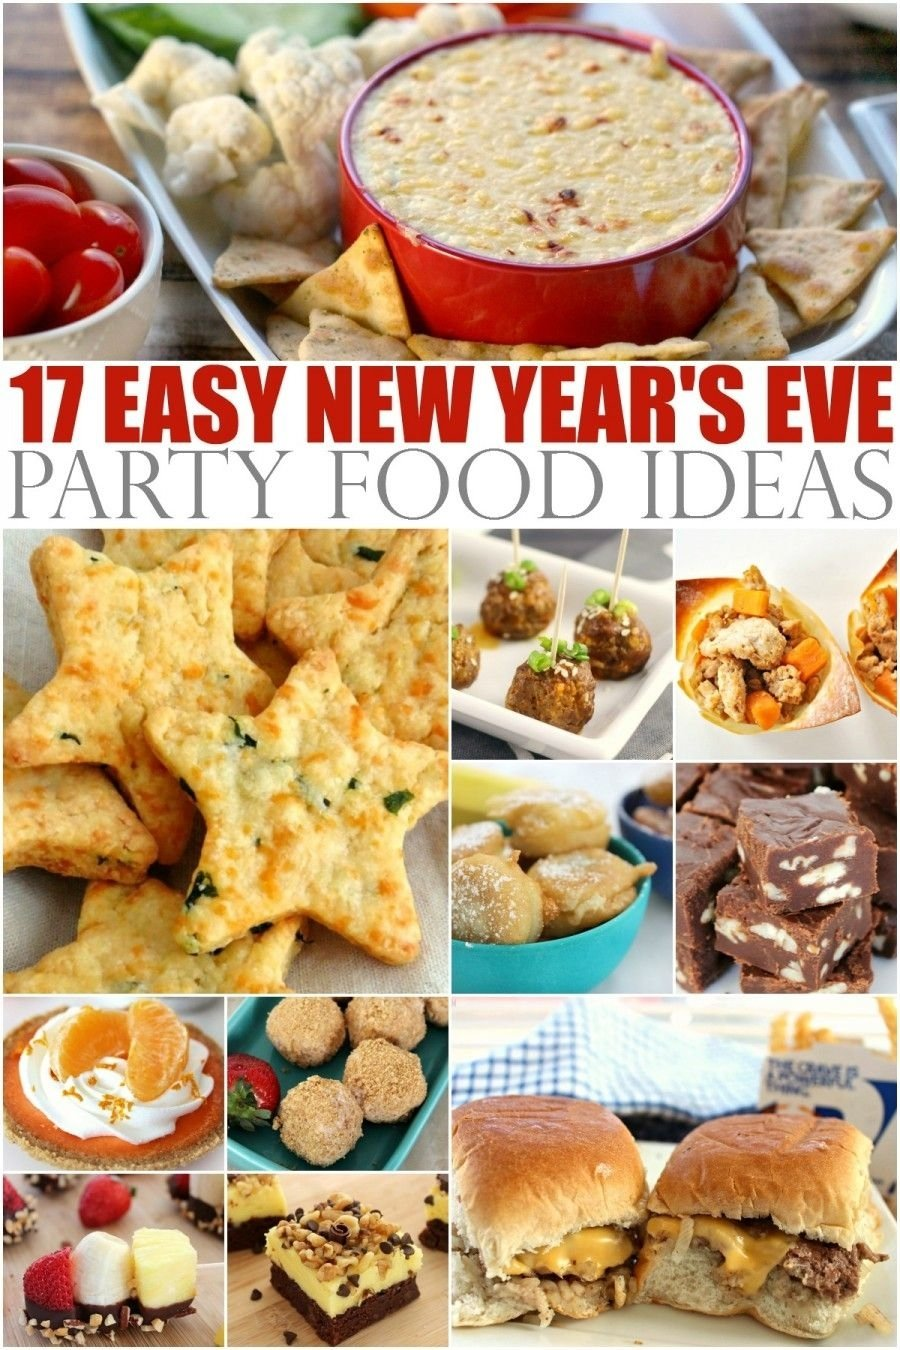 10 Spectacular Food Ideas For New Years Eve Party a new years eve prep guide for the ultimate pizazz manger 1 2020